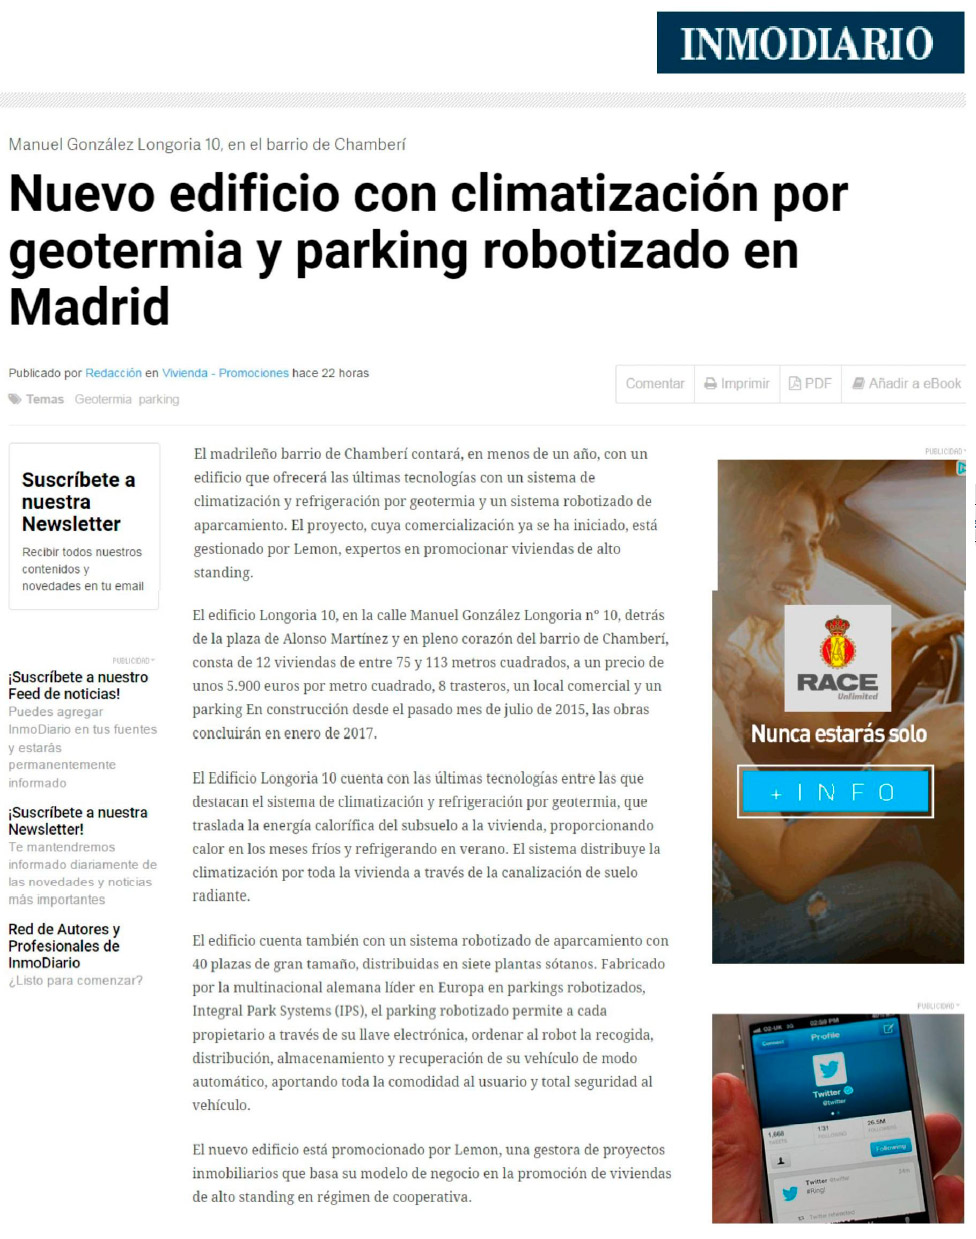 noticia-inmodiario